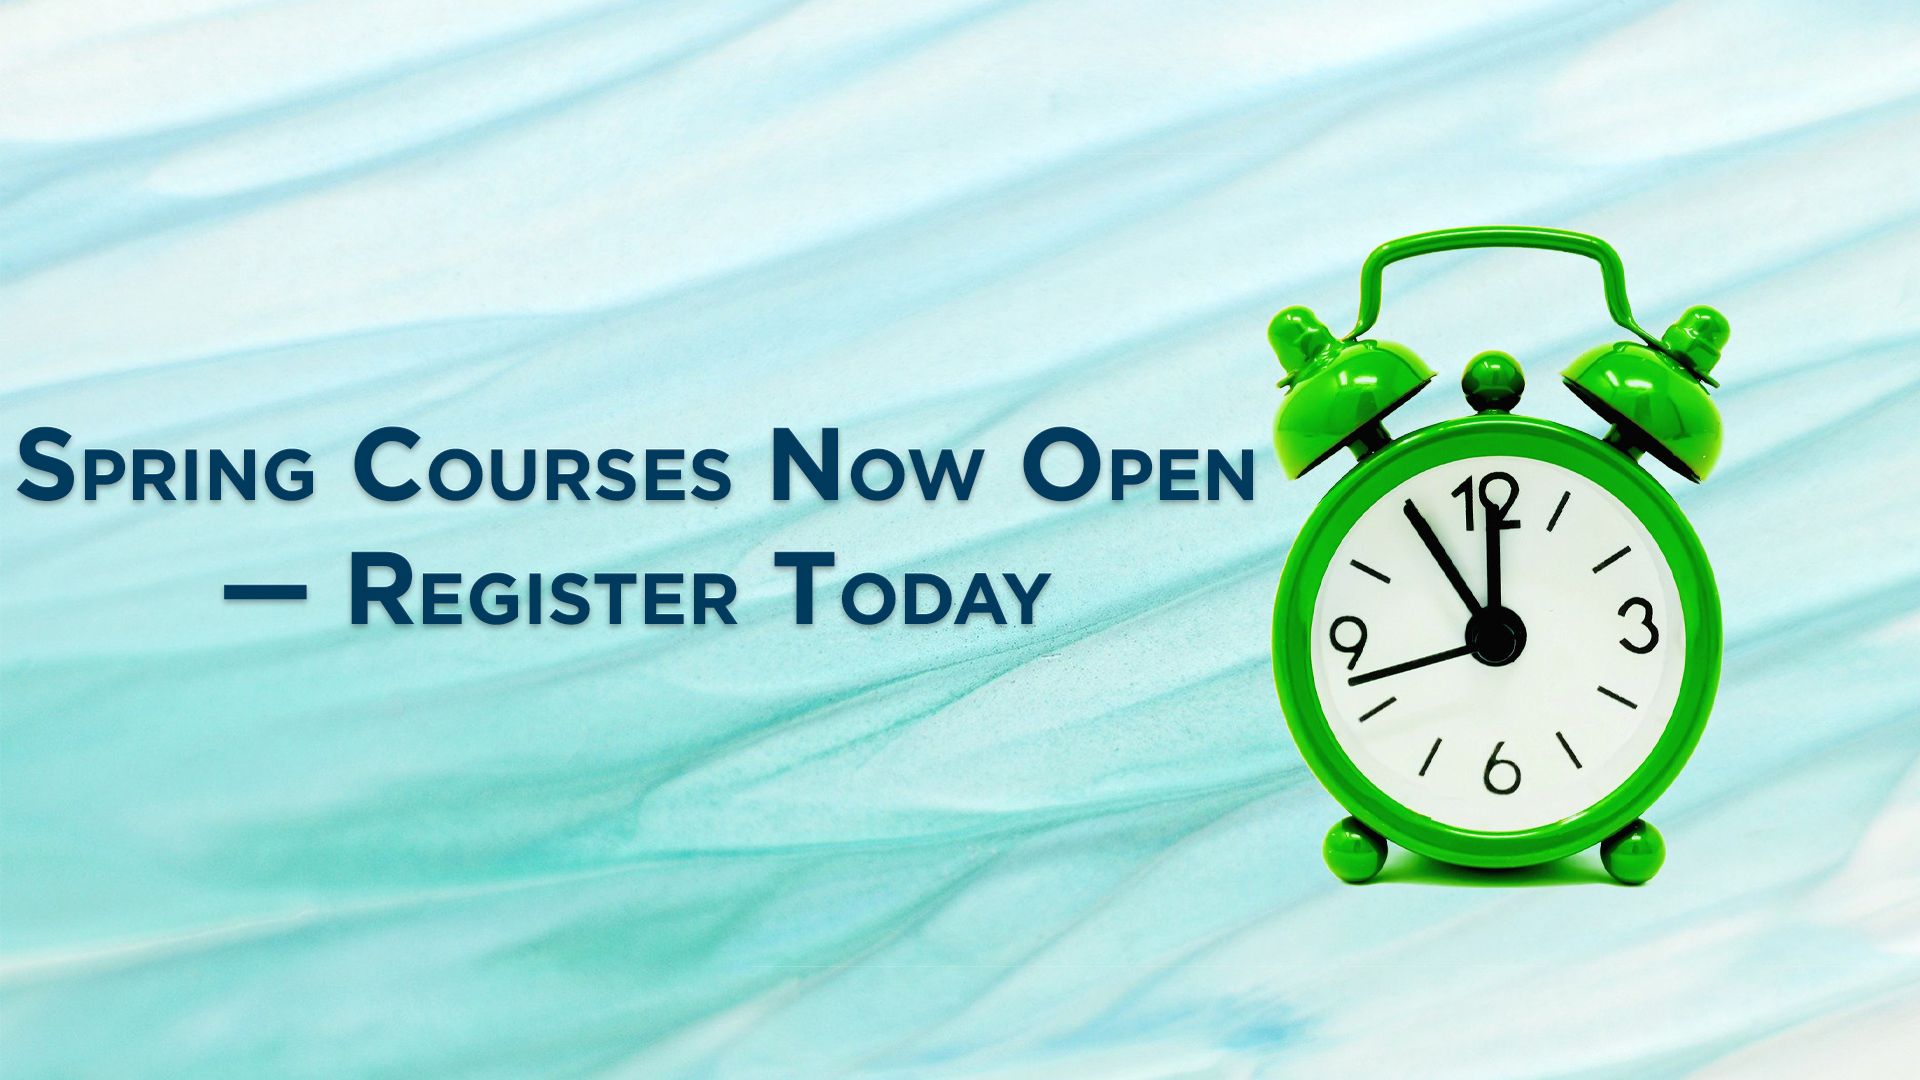 Not too late to register for spring classes